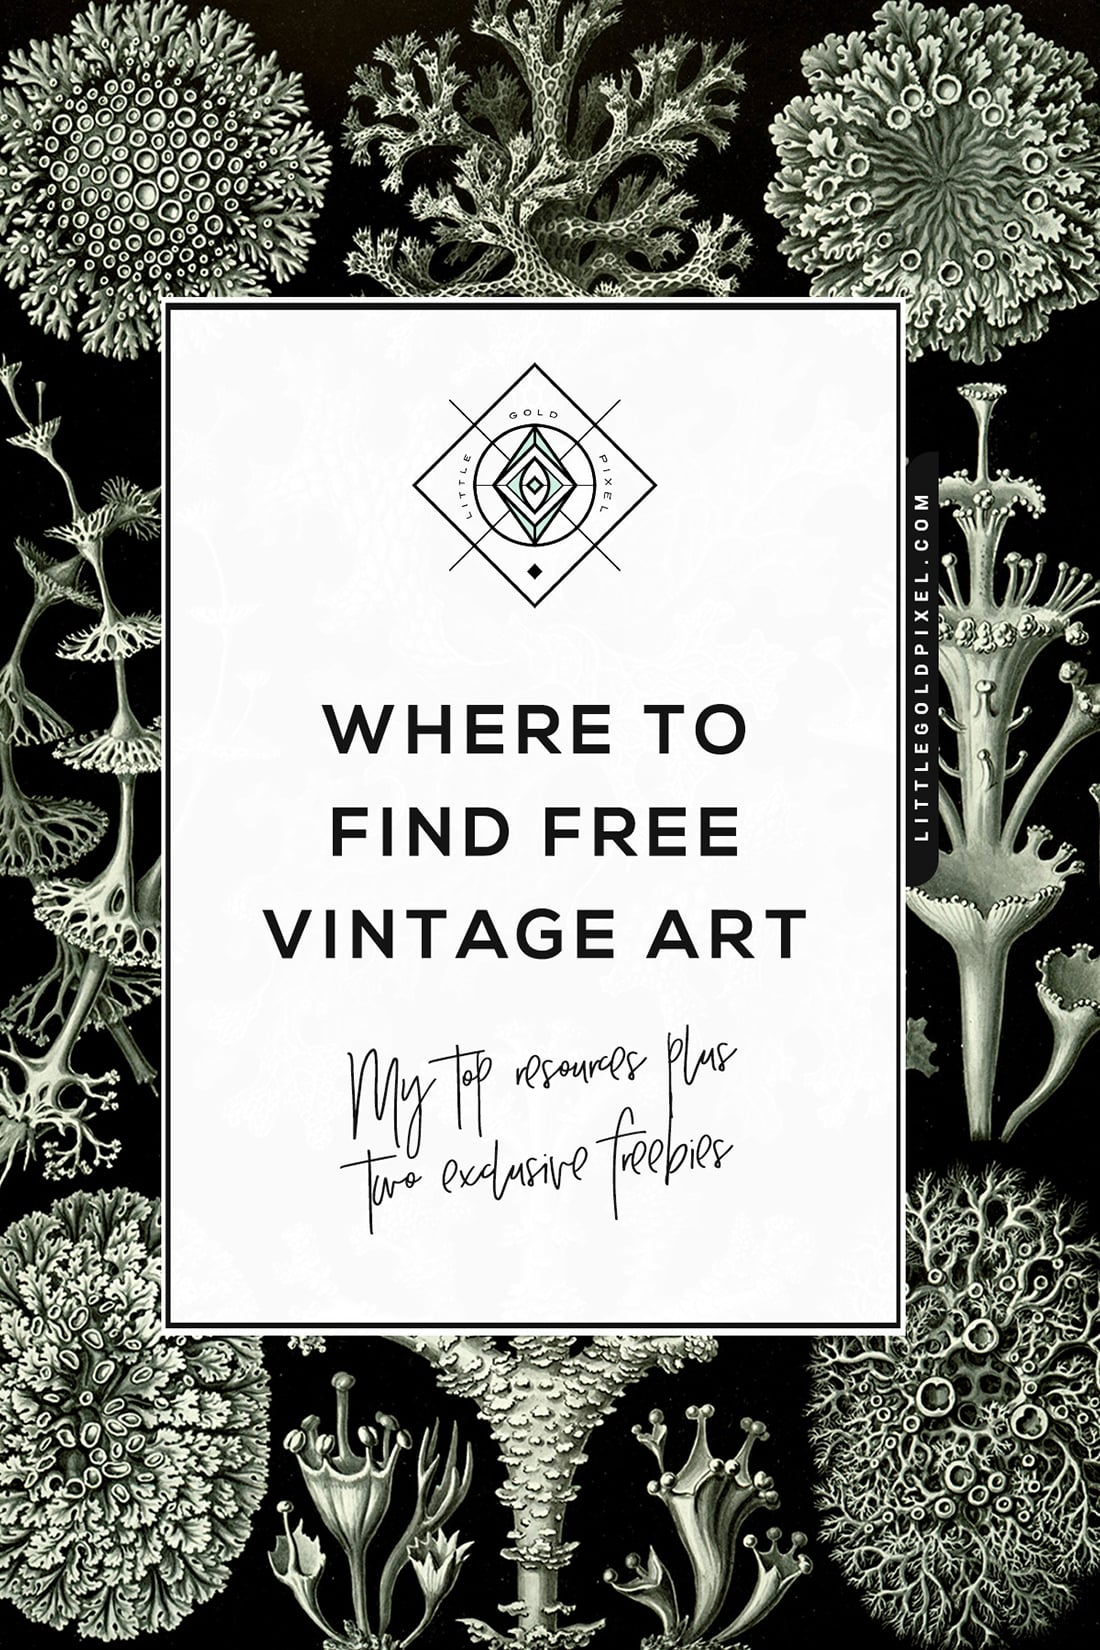 photograph about Free Vintage Printable titled No cost Basic Artwork Exactly where towards Track down it + One of a kind Freebies